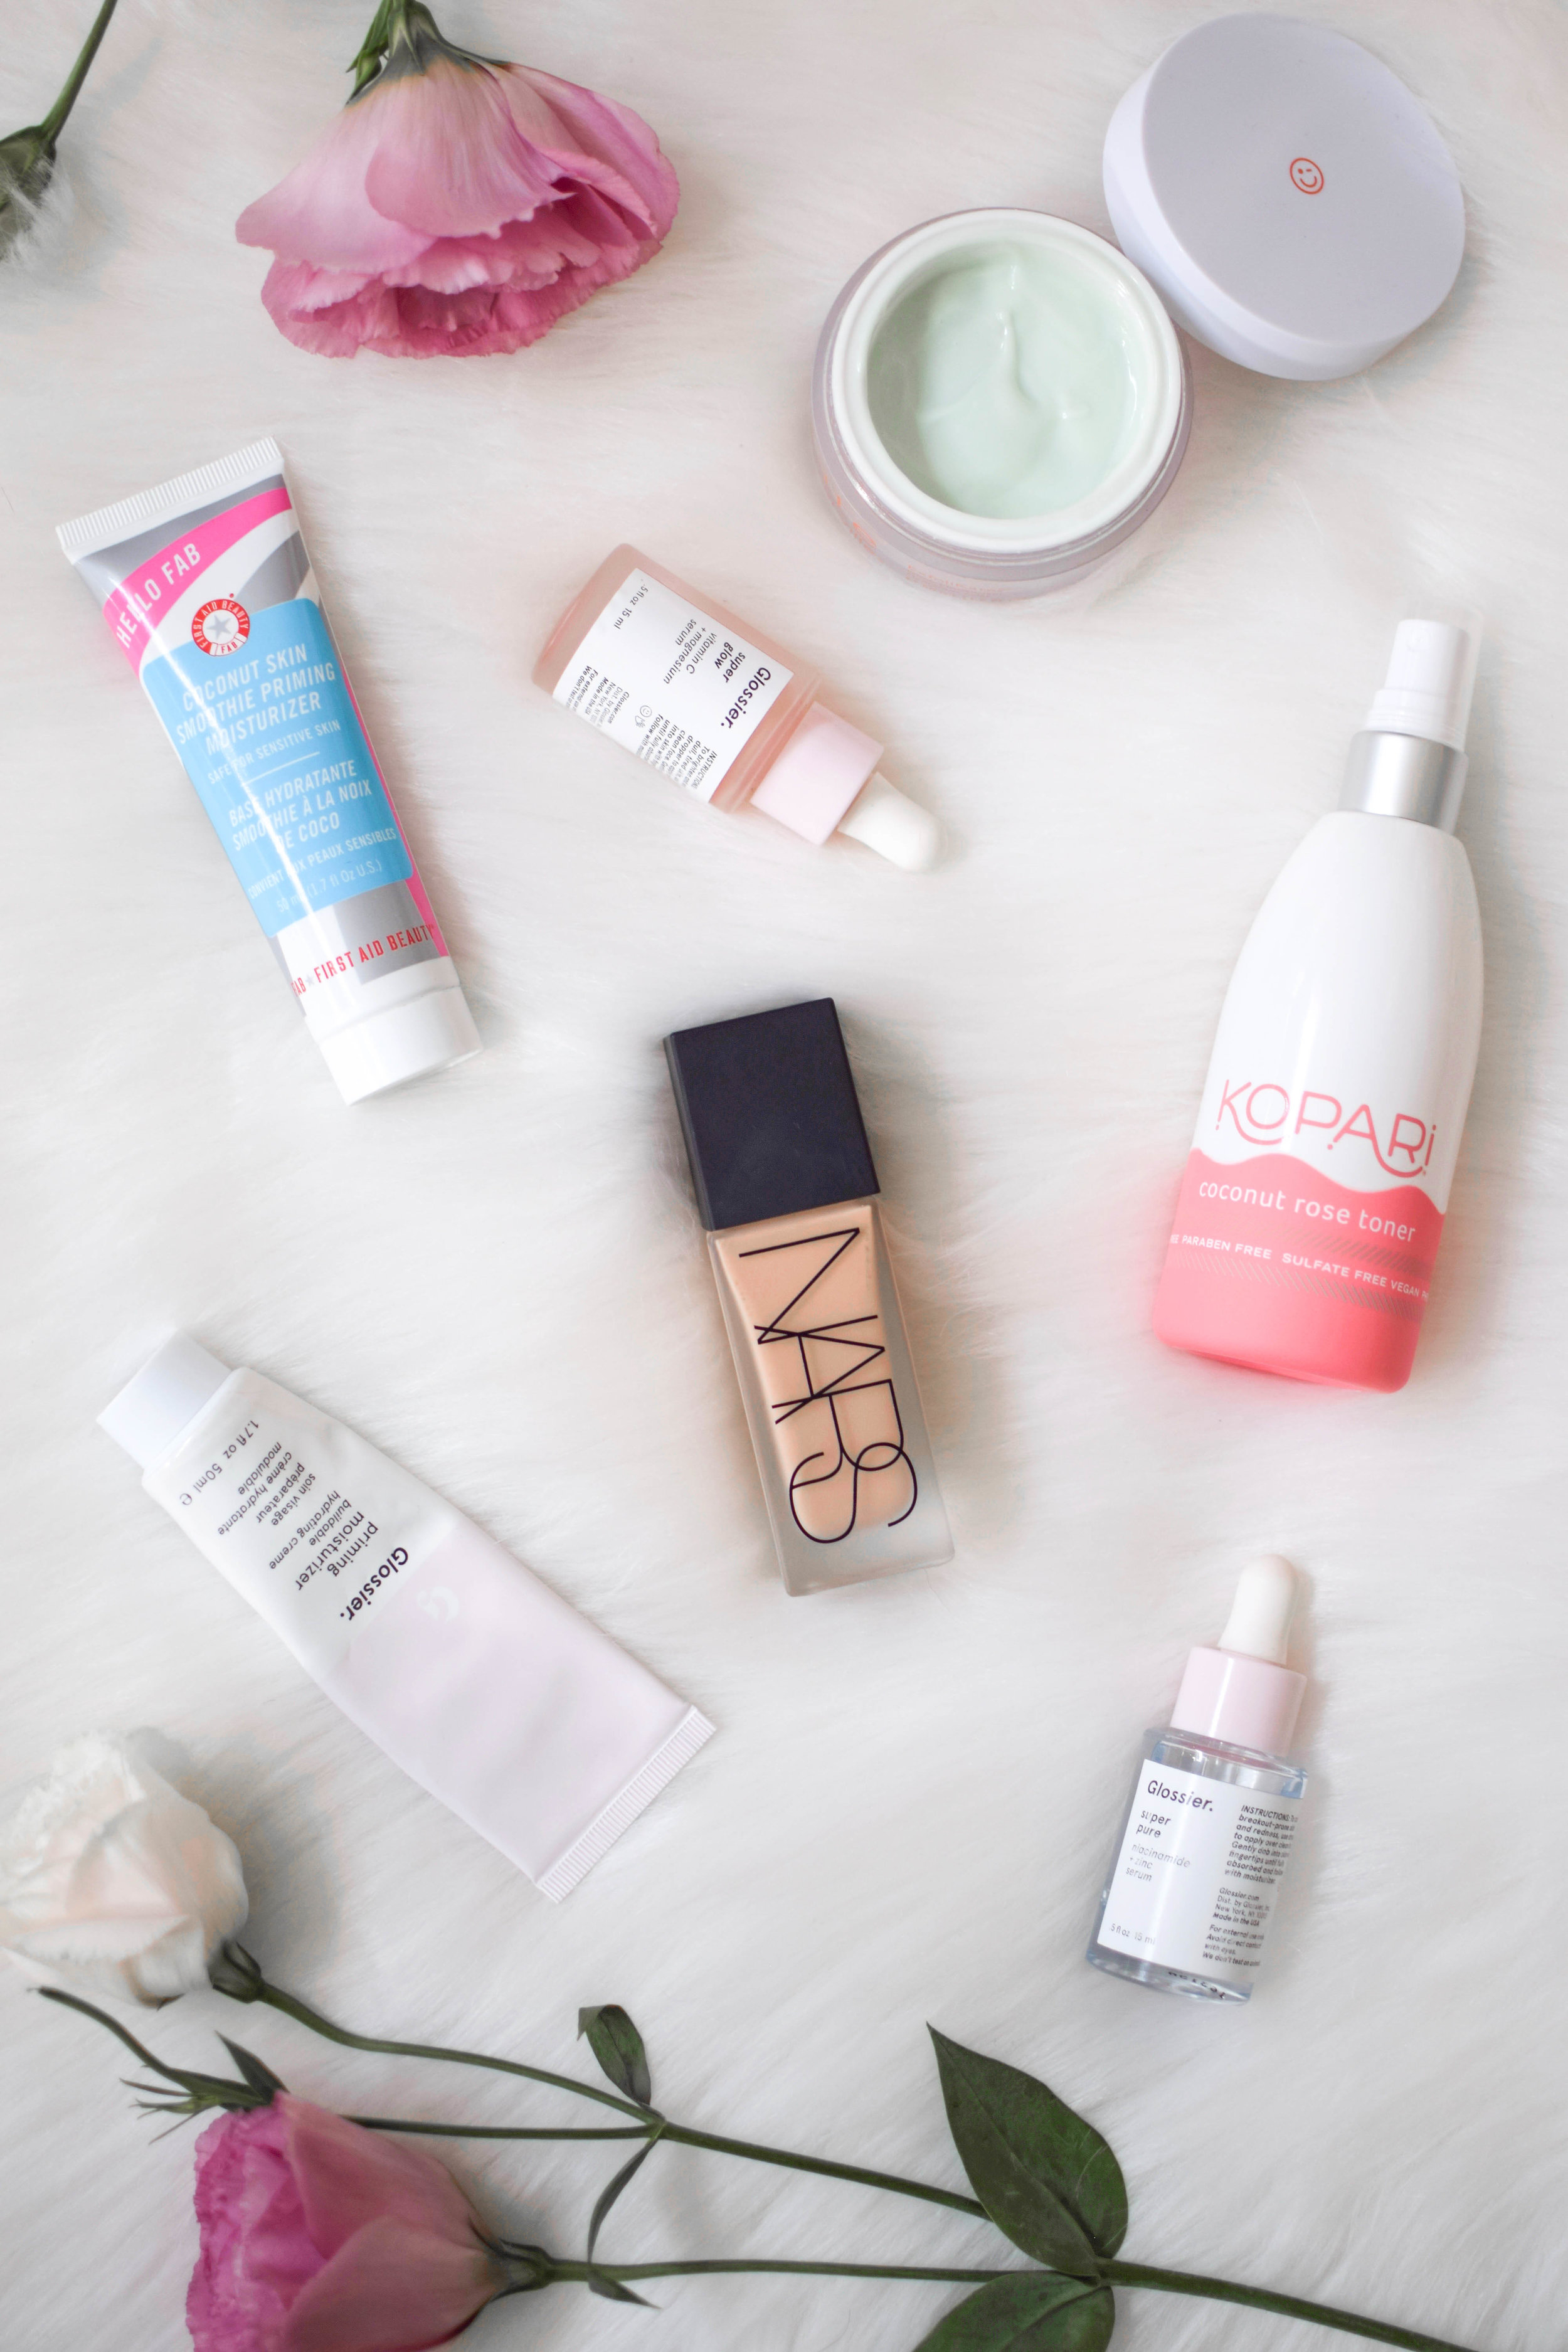 every day makeup routine / makeup product flat lay / beauty product flat lay / how to style a flat lay / nars / glossier / kopari / first aid beauty / kate somerville